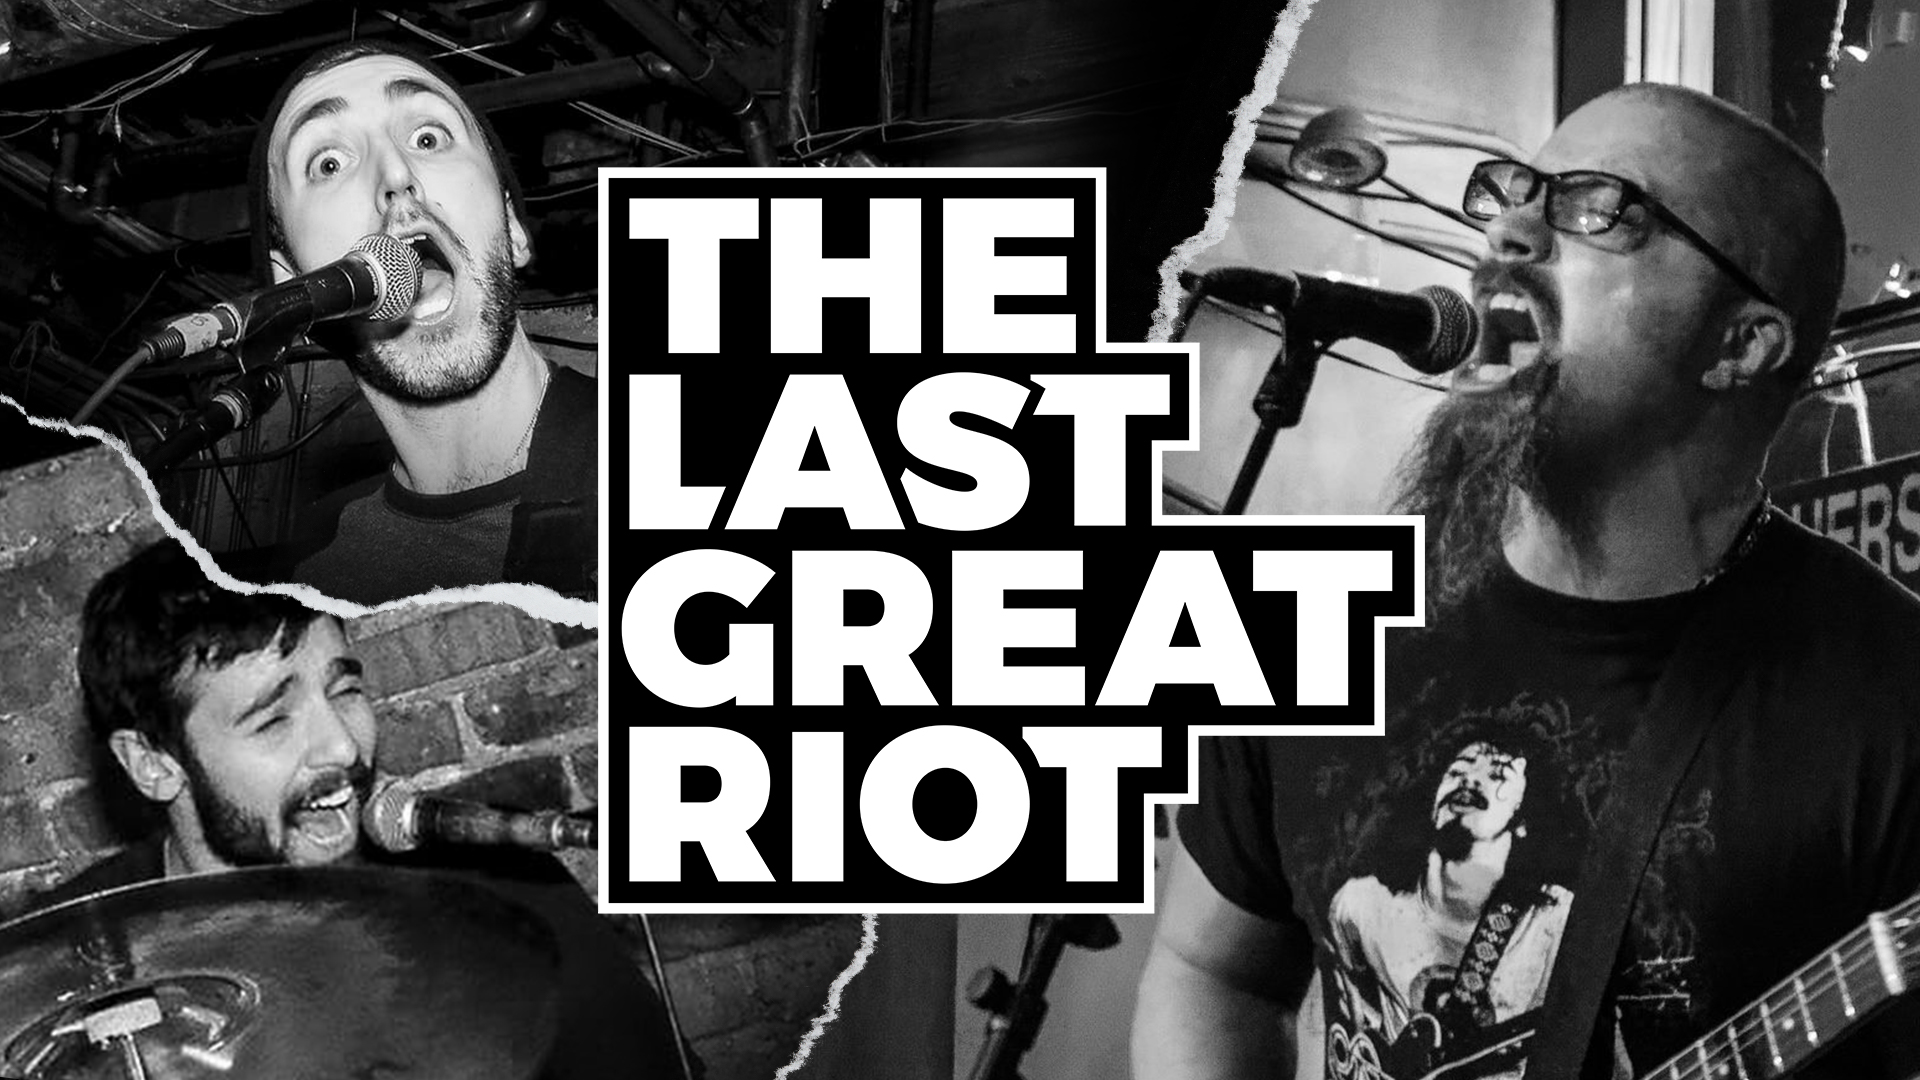 The Last Great Riot